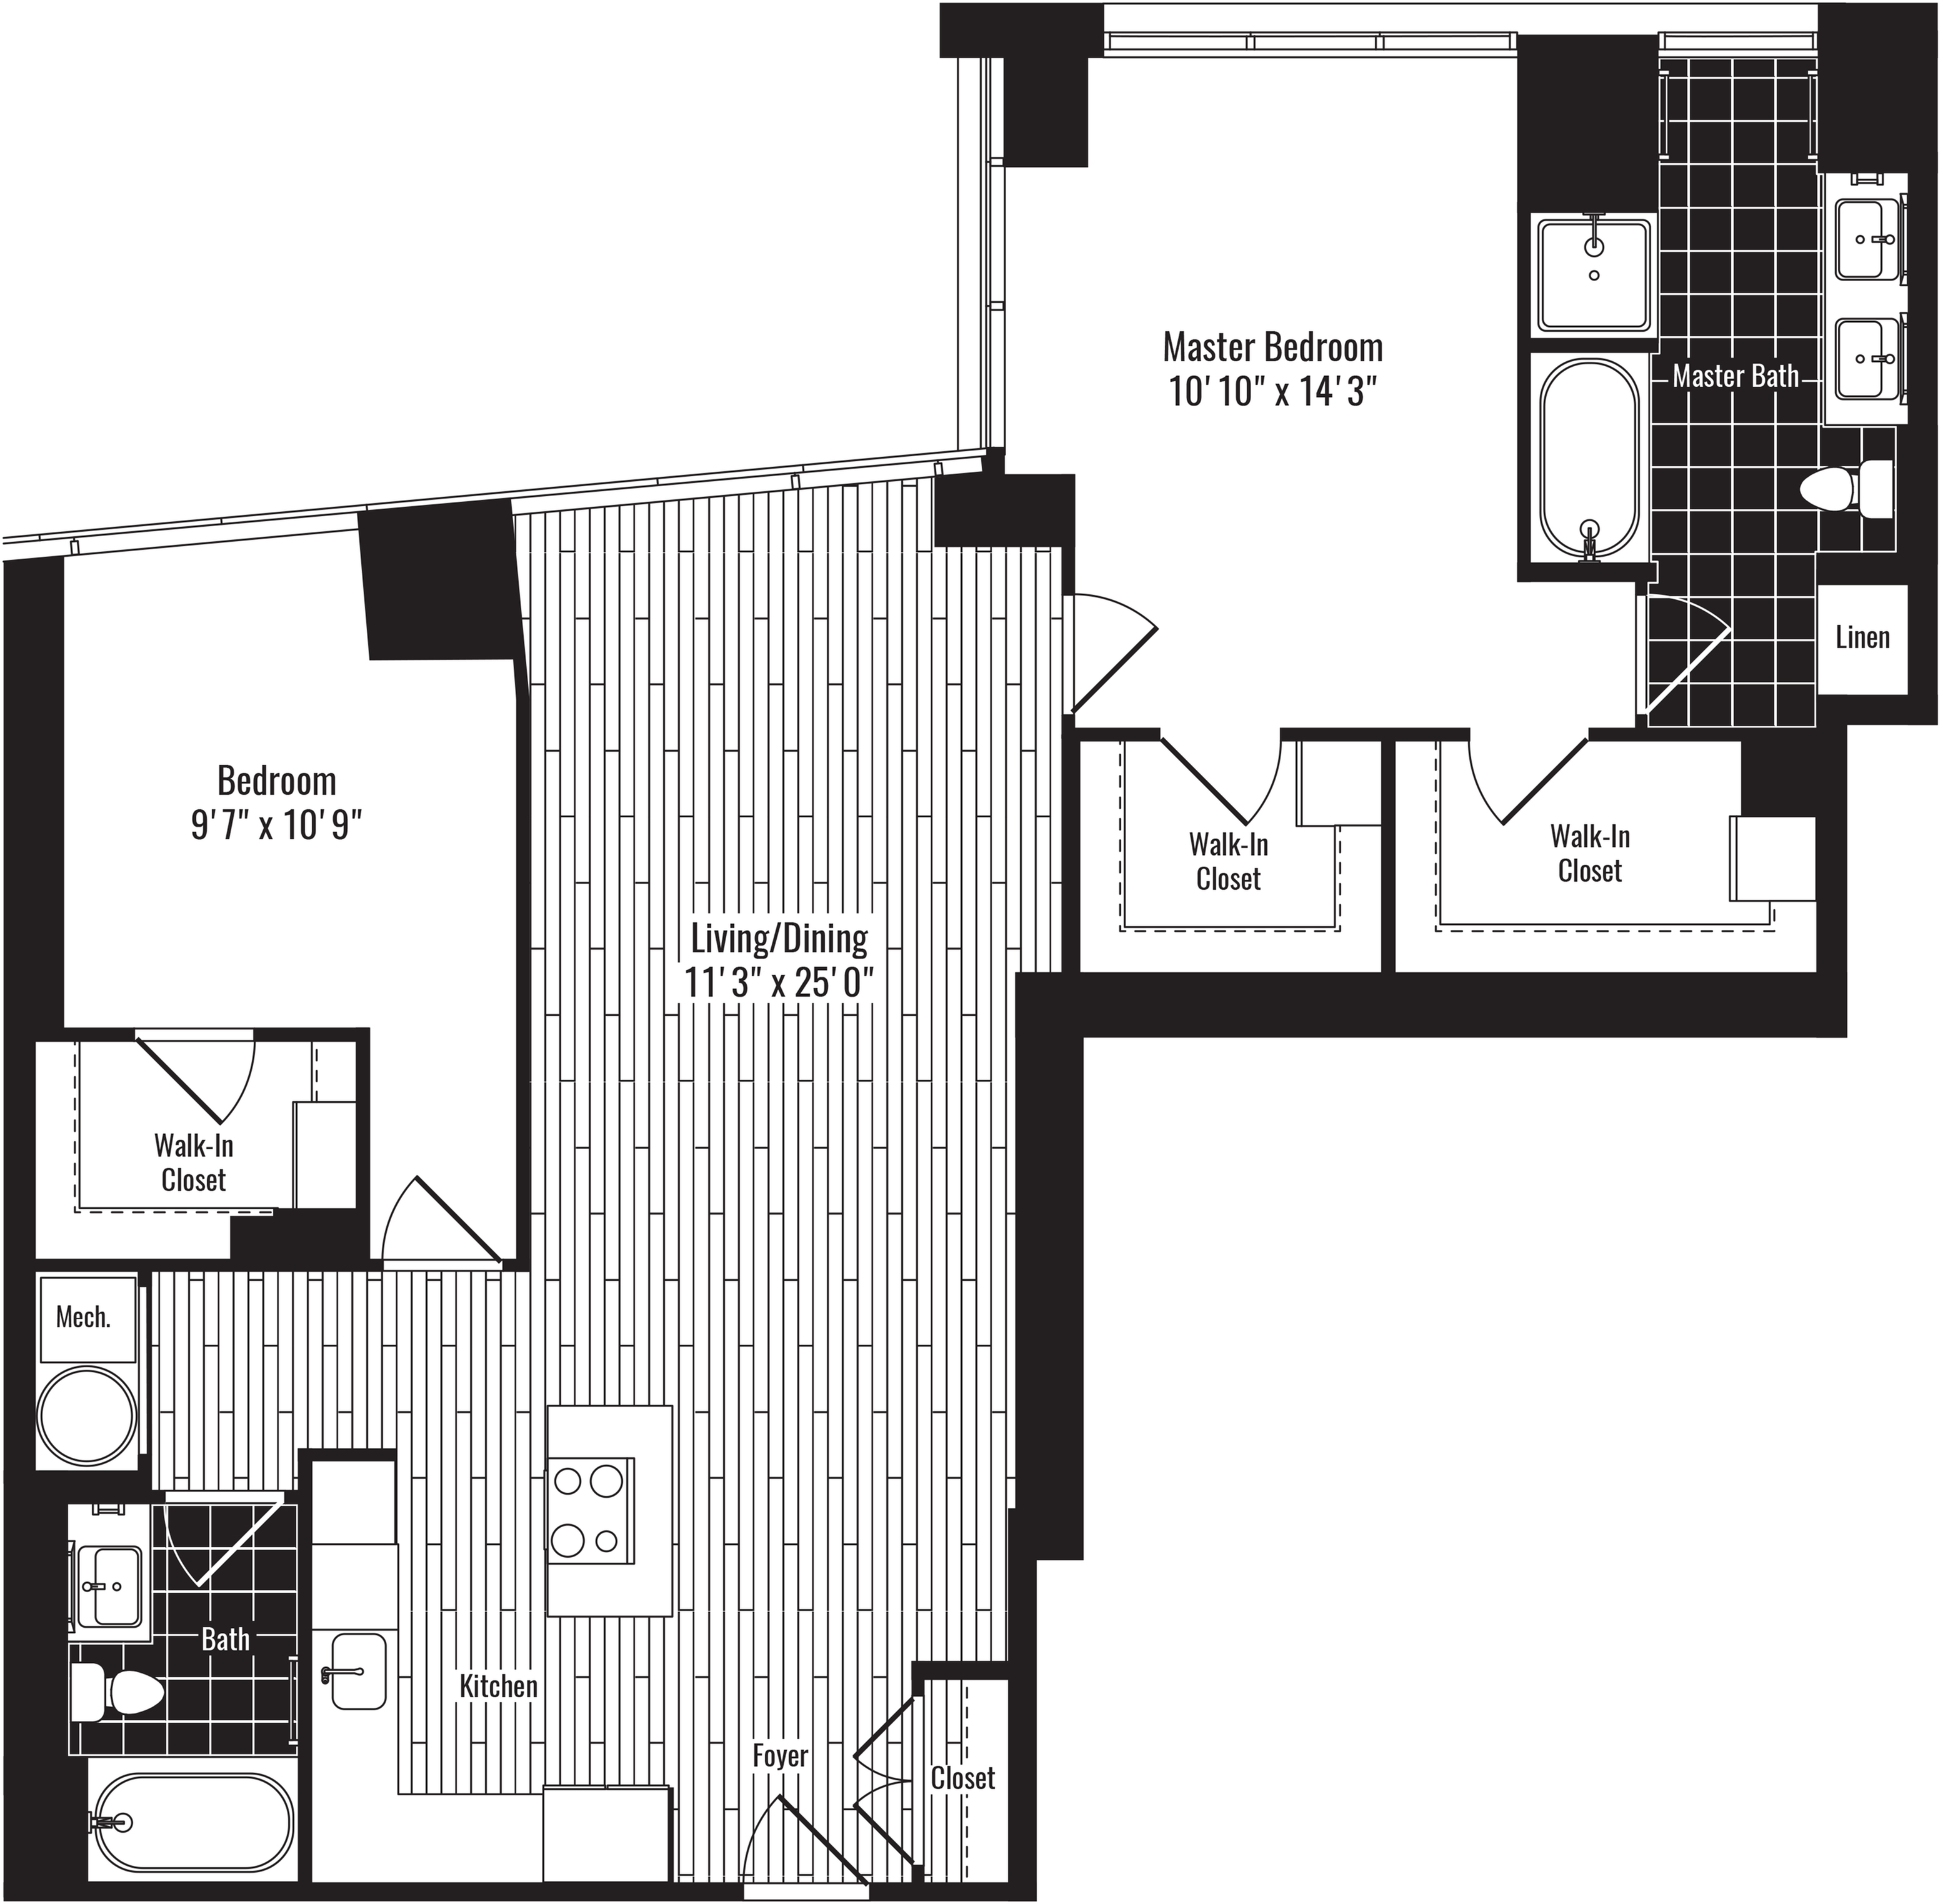 1276 square foot two bedroom two bath apartment floorplan image